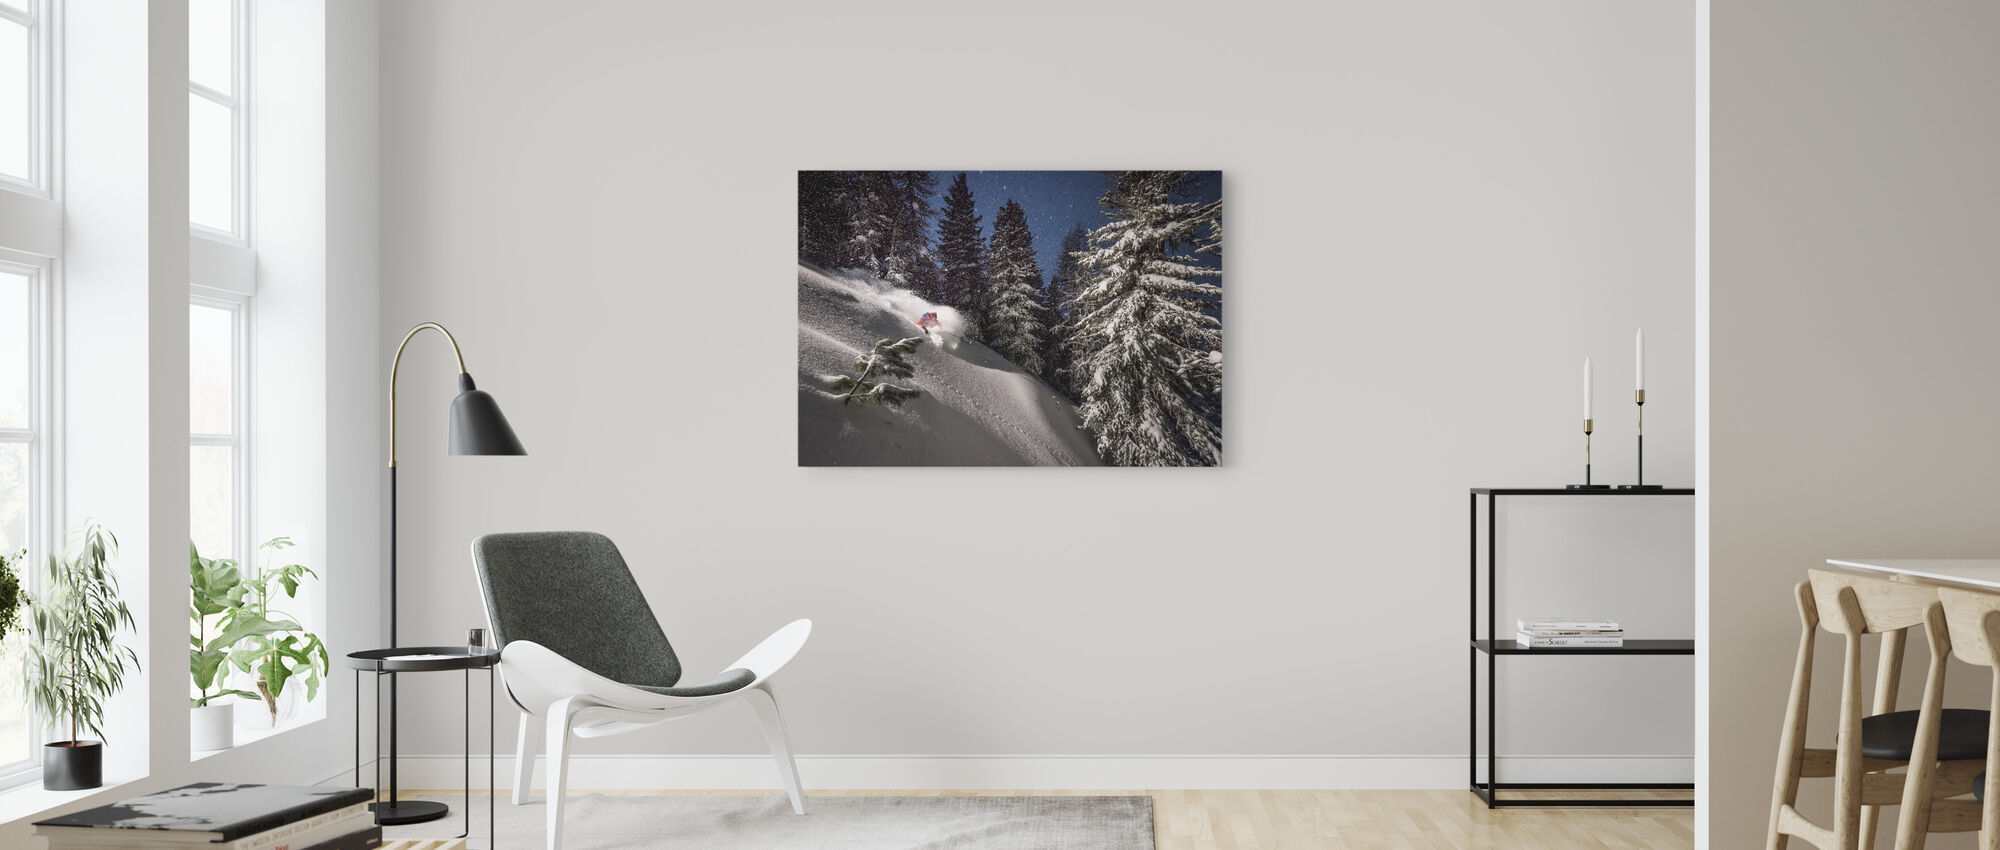 Night Powder Turns with Adrien Coirier - Canvas print - Living Room